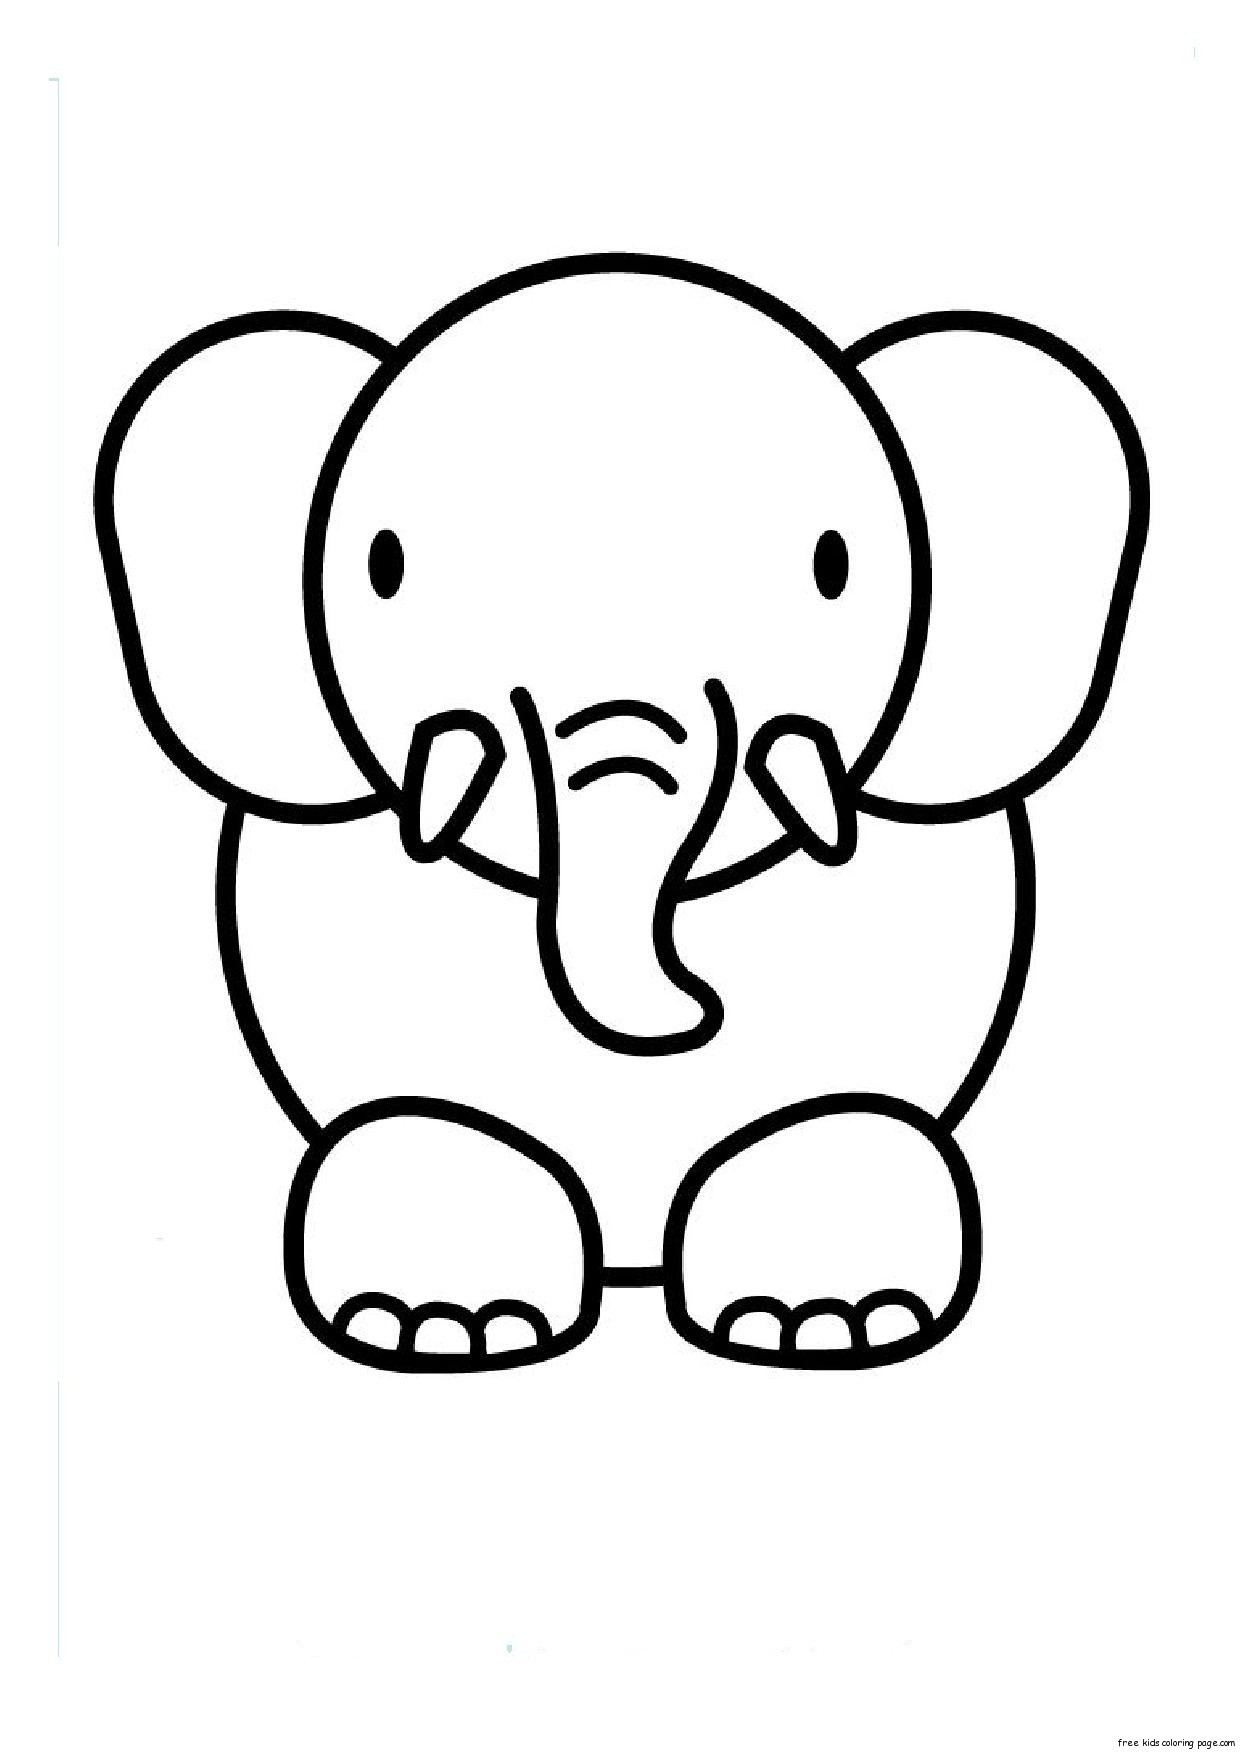 Best ideas about Free Printable Coloring Pages Animals . Save or Pin Animal Coloring Pages Bestofcoloring Now.